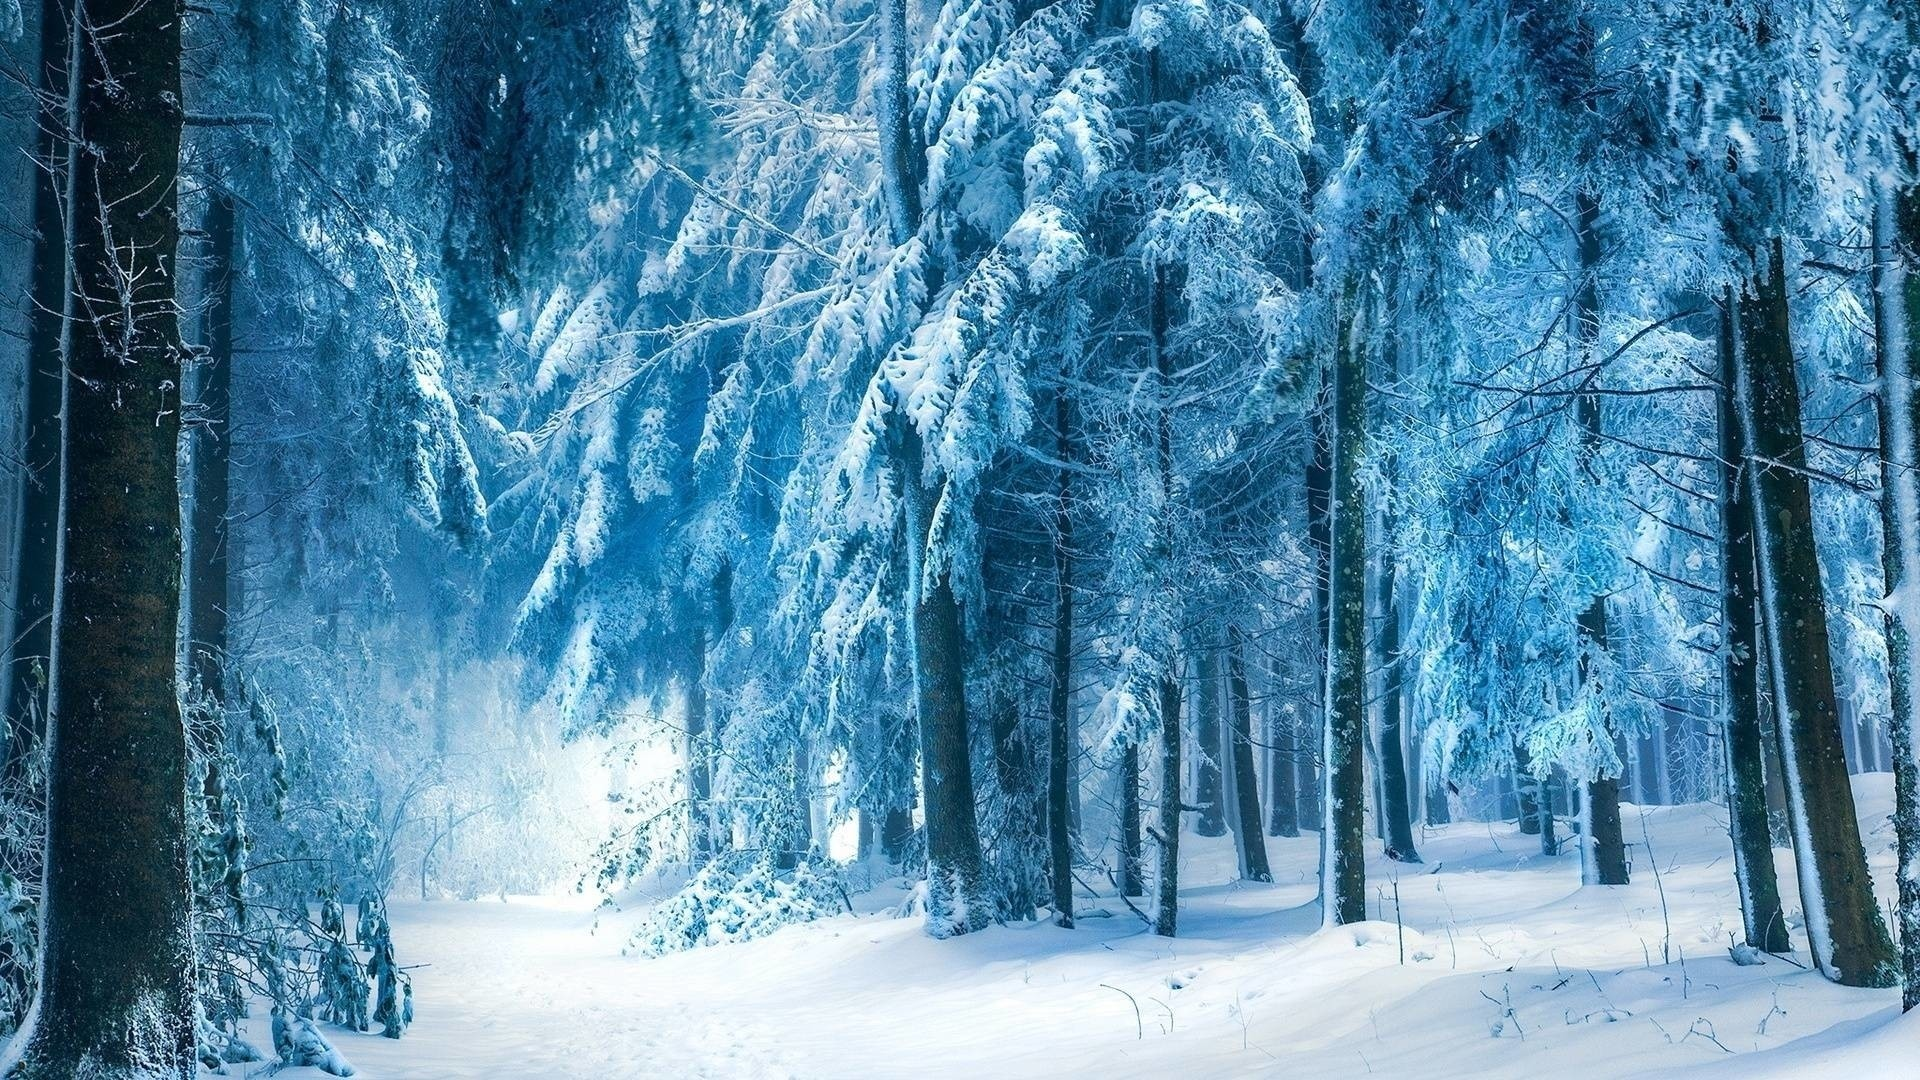 Snowy Wallpaper for pc